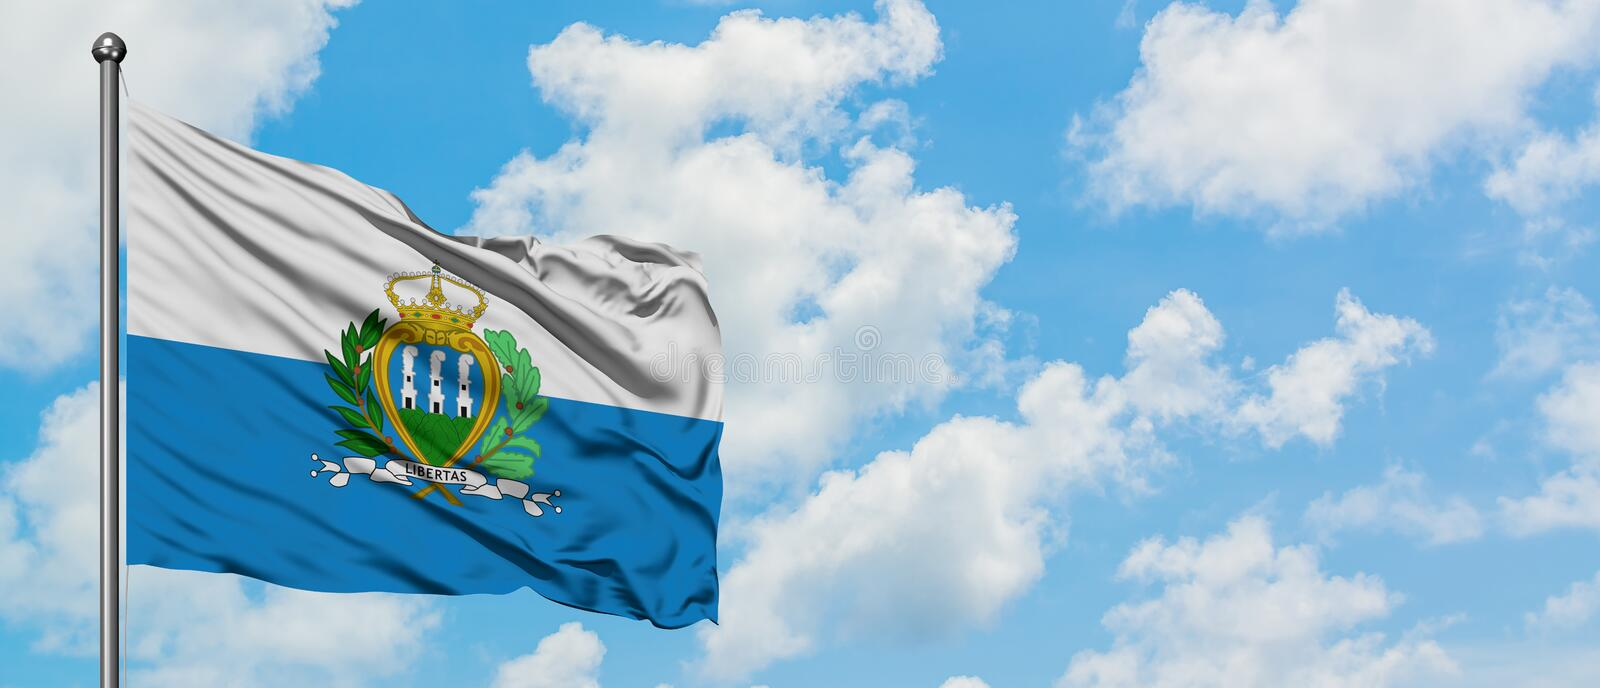 San Marino flag waving in the wind against white cloudy blue sky. Diplomacy concept, international relations.  royalty free stock photo